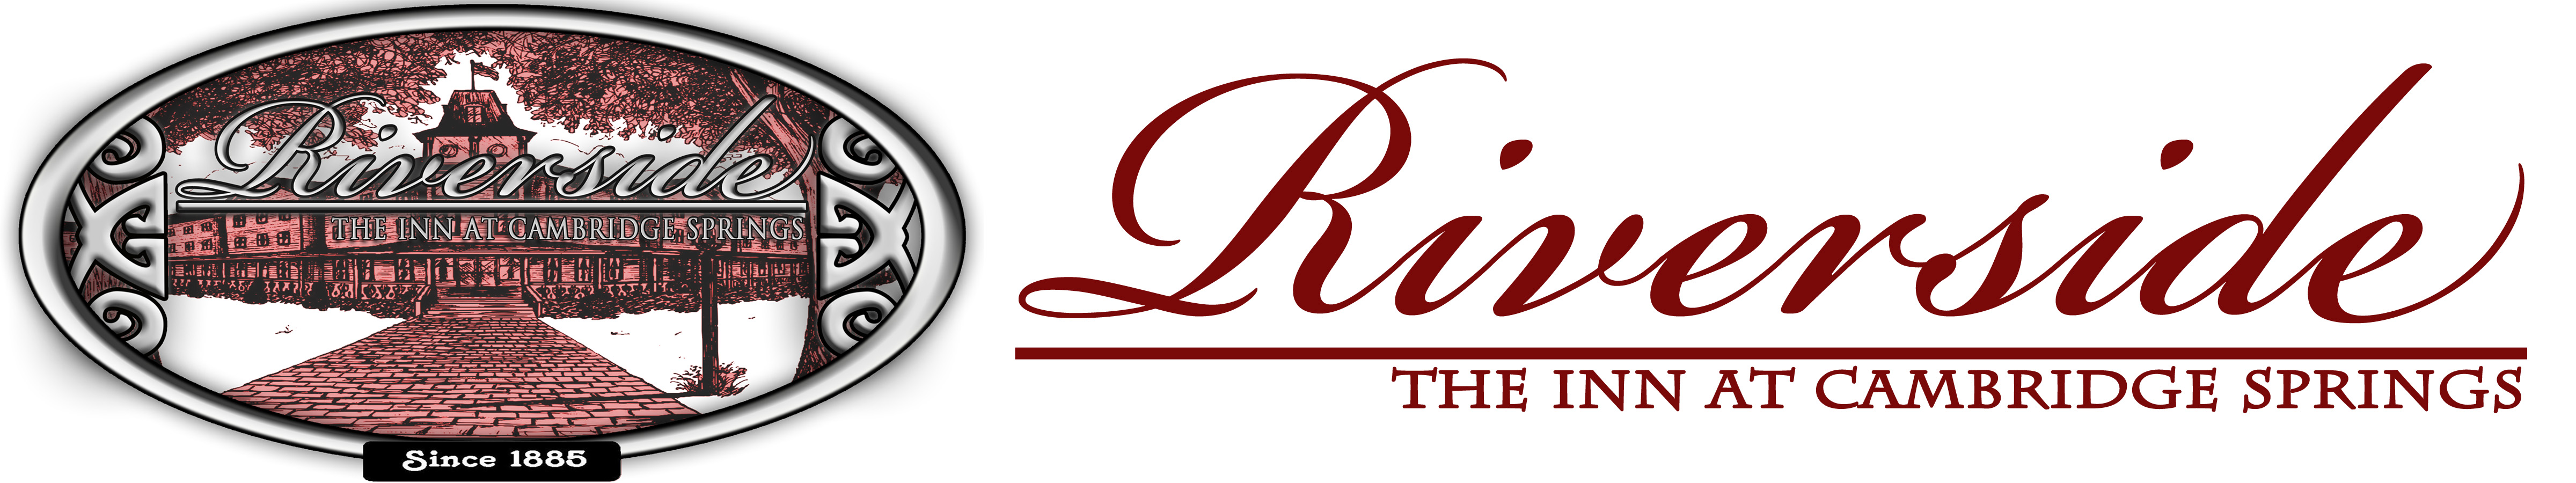 Find tickets from Riverside: The Inn at Cambridge Springs